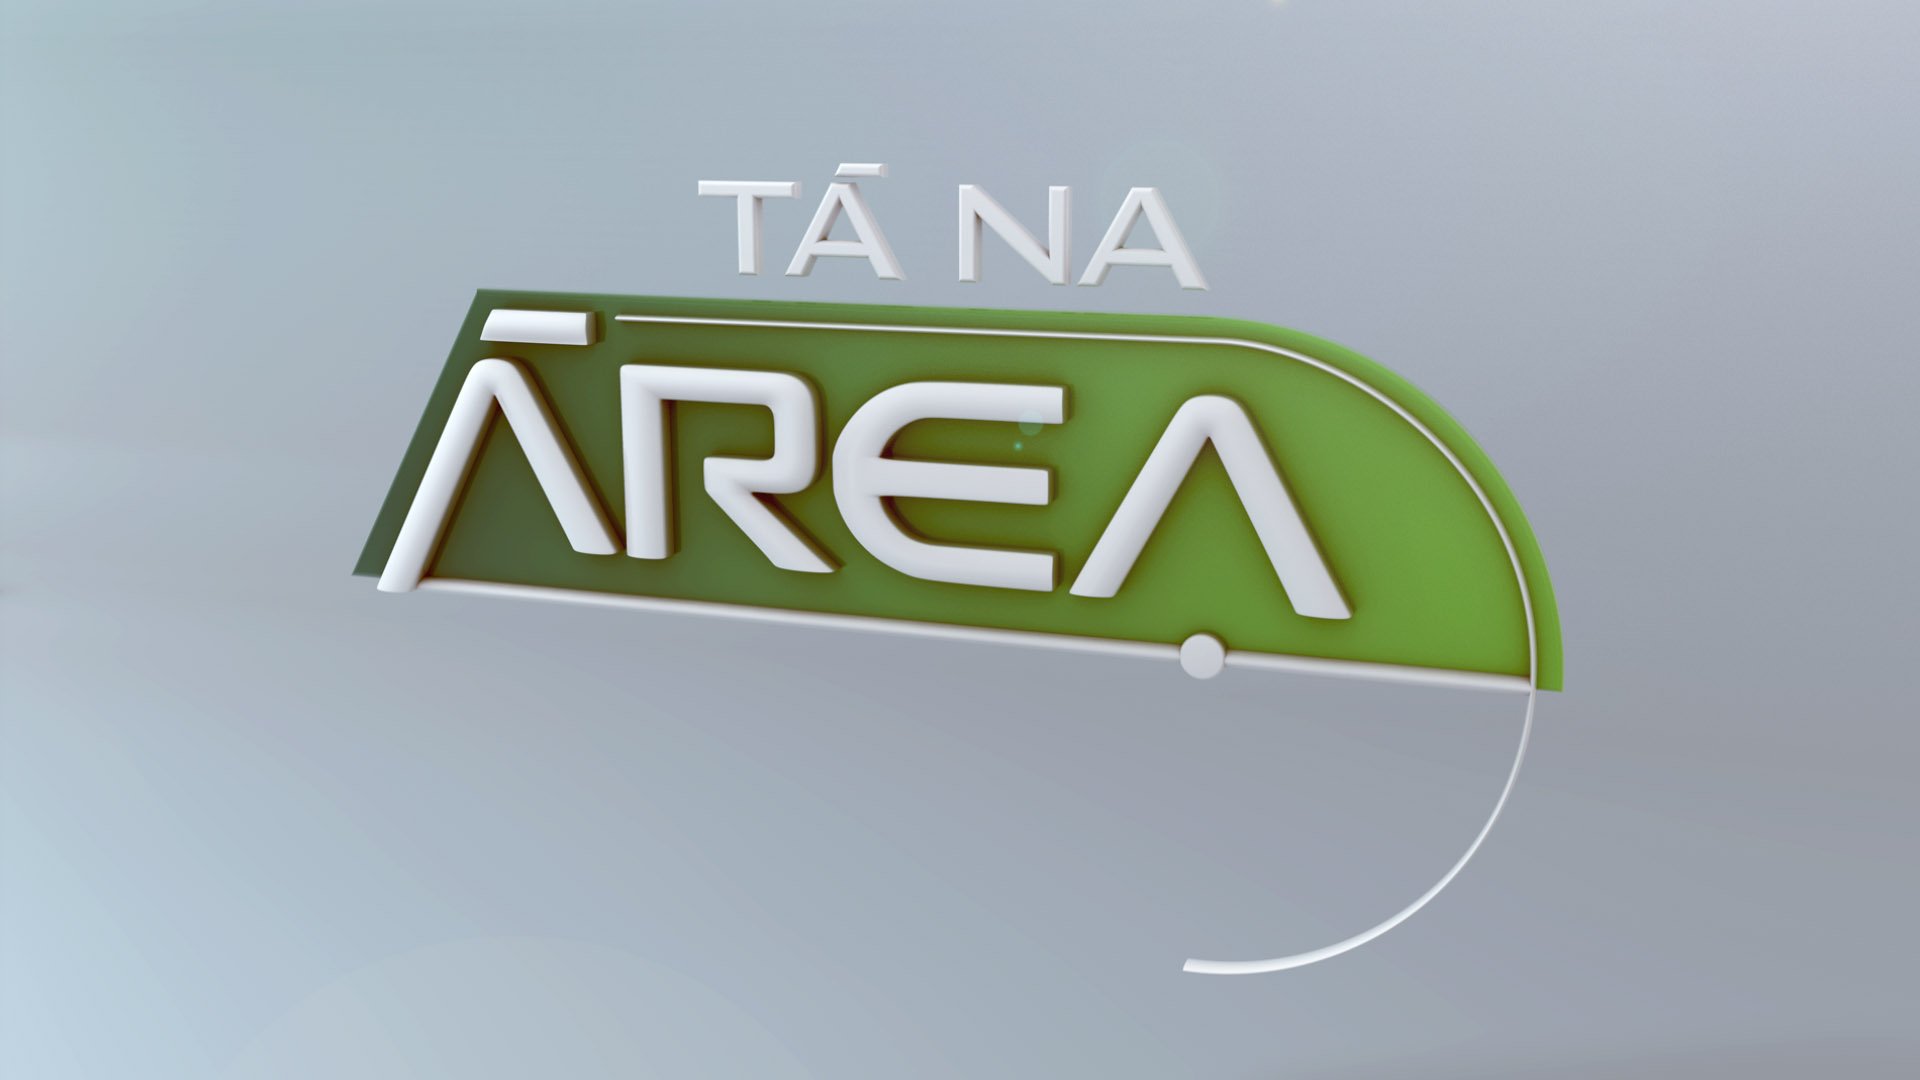 T na rea (Sportv)